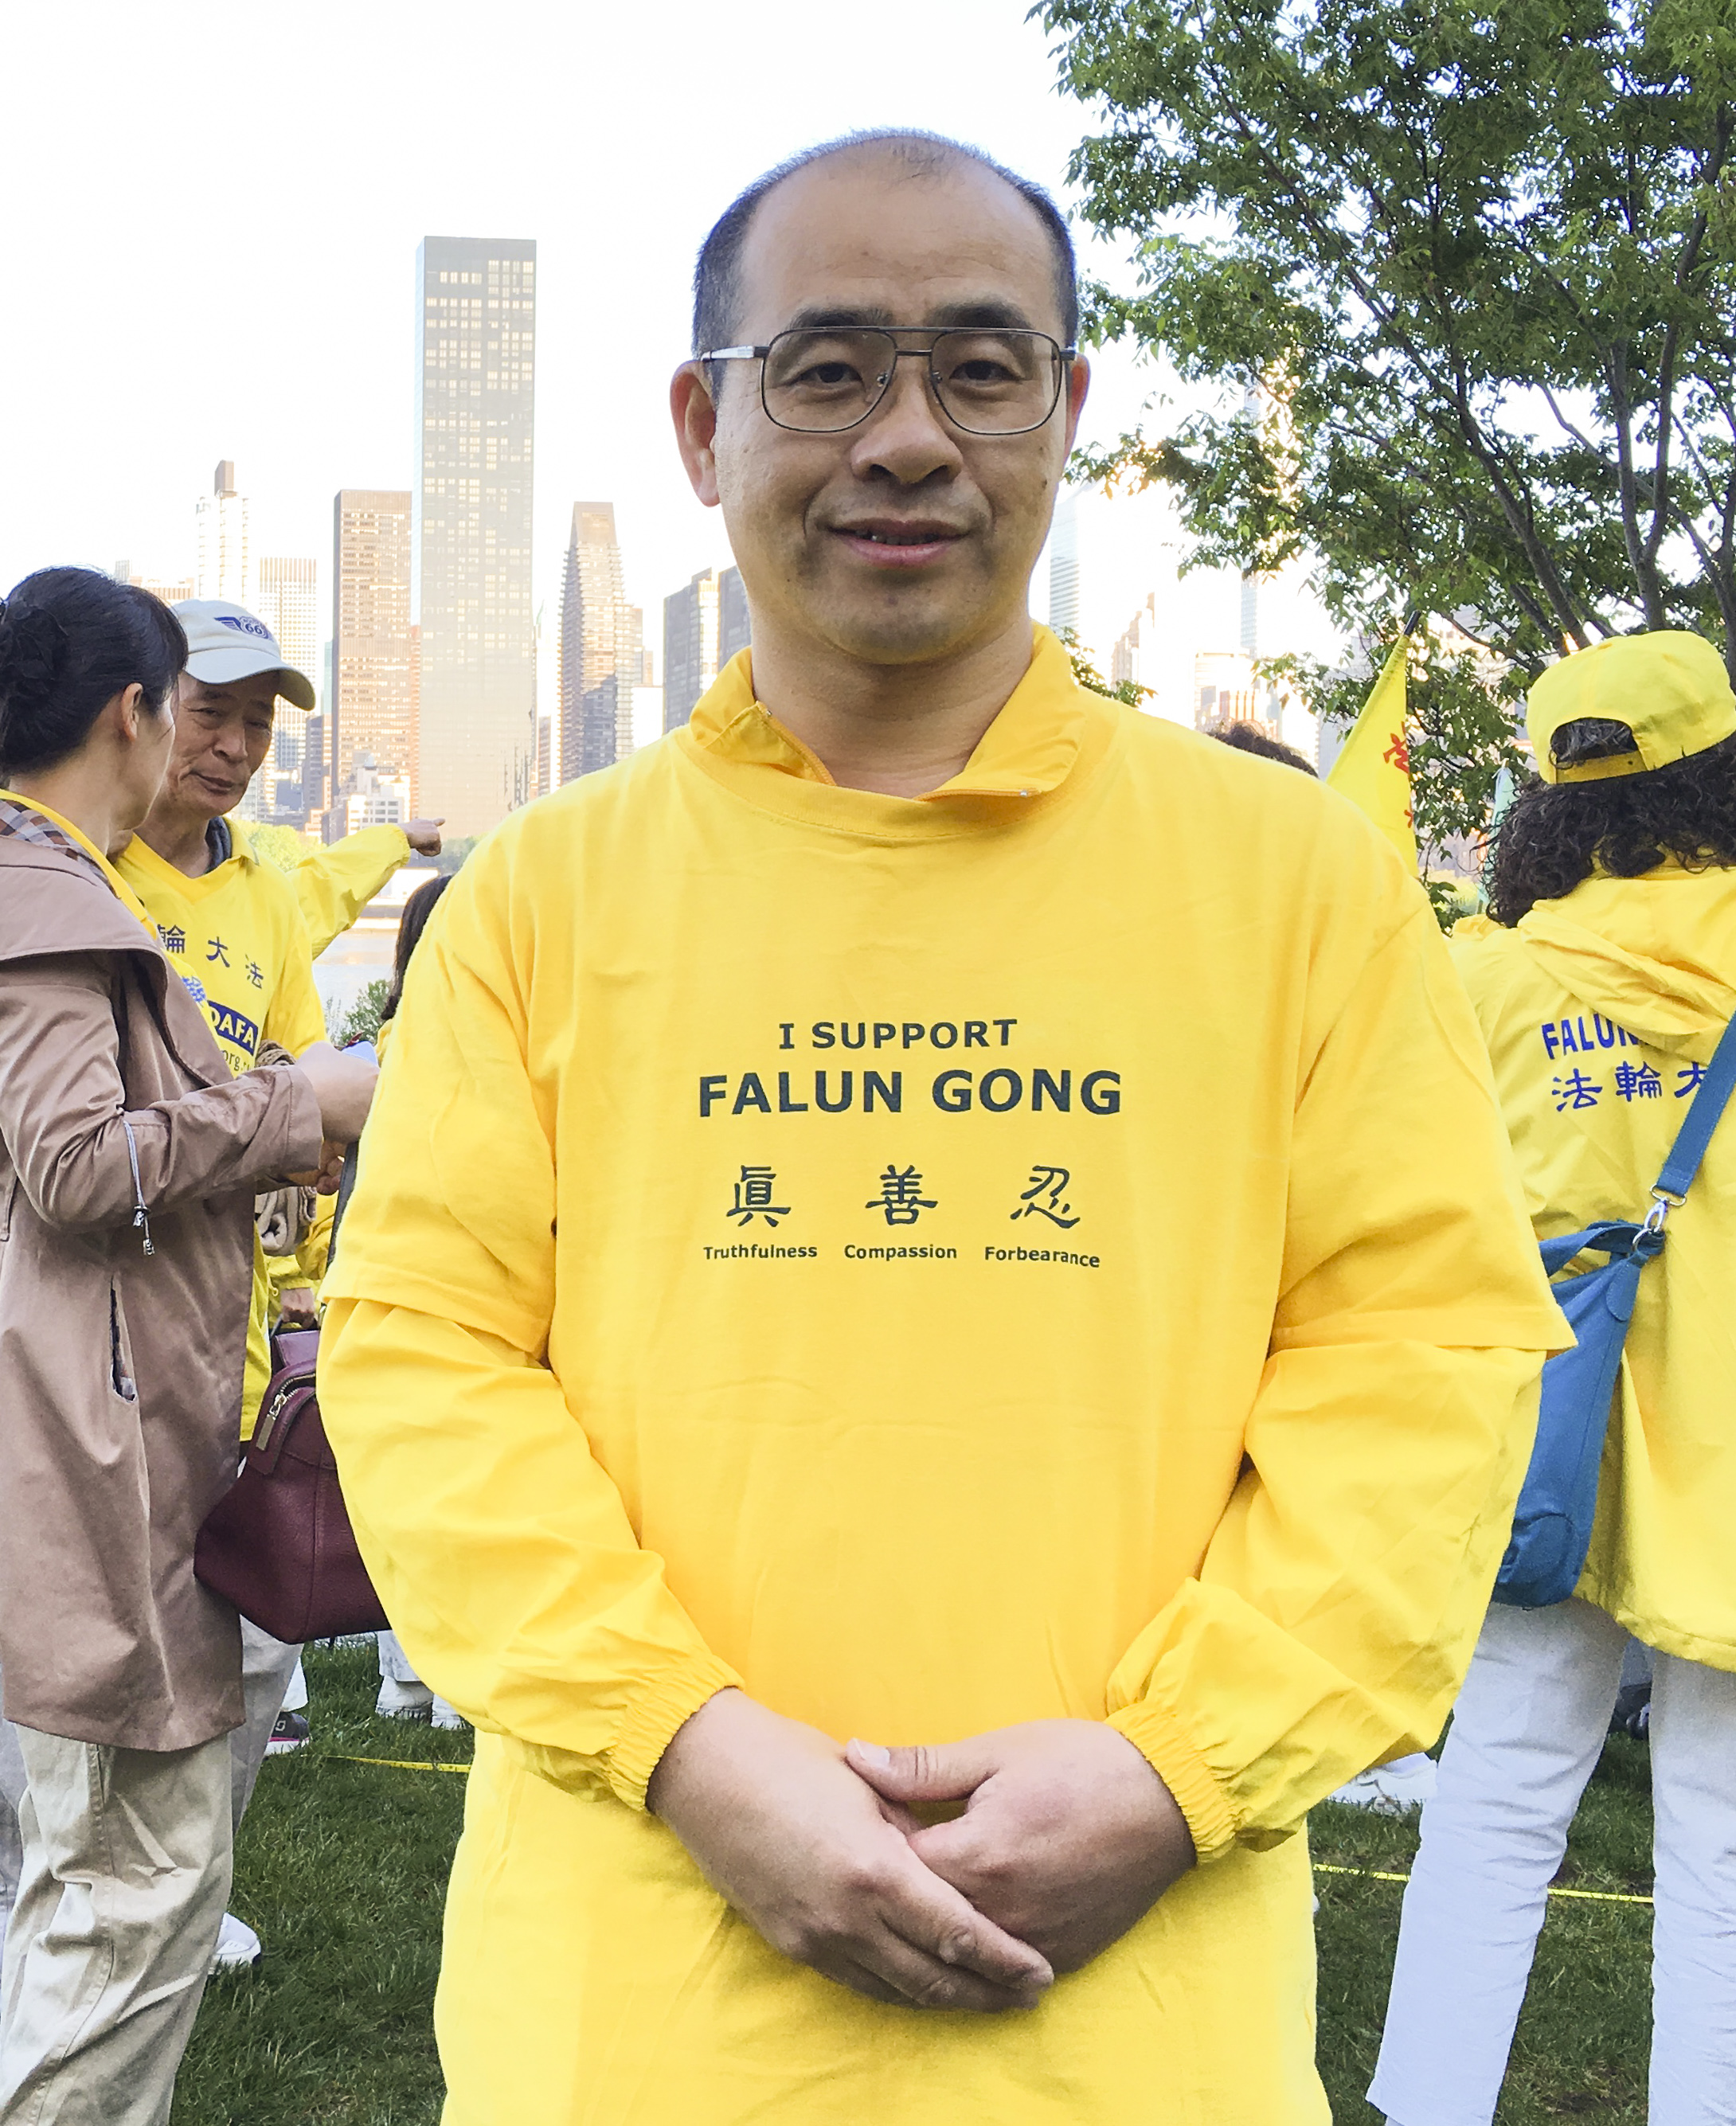 Kurebayashi Mitsuhiro, a Chinese Japanese practitioner of Falun Gong, joins a character formation event at Gantry Plaza State Park on May 12, 2016. (Larry Ong/Epoch Times)